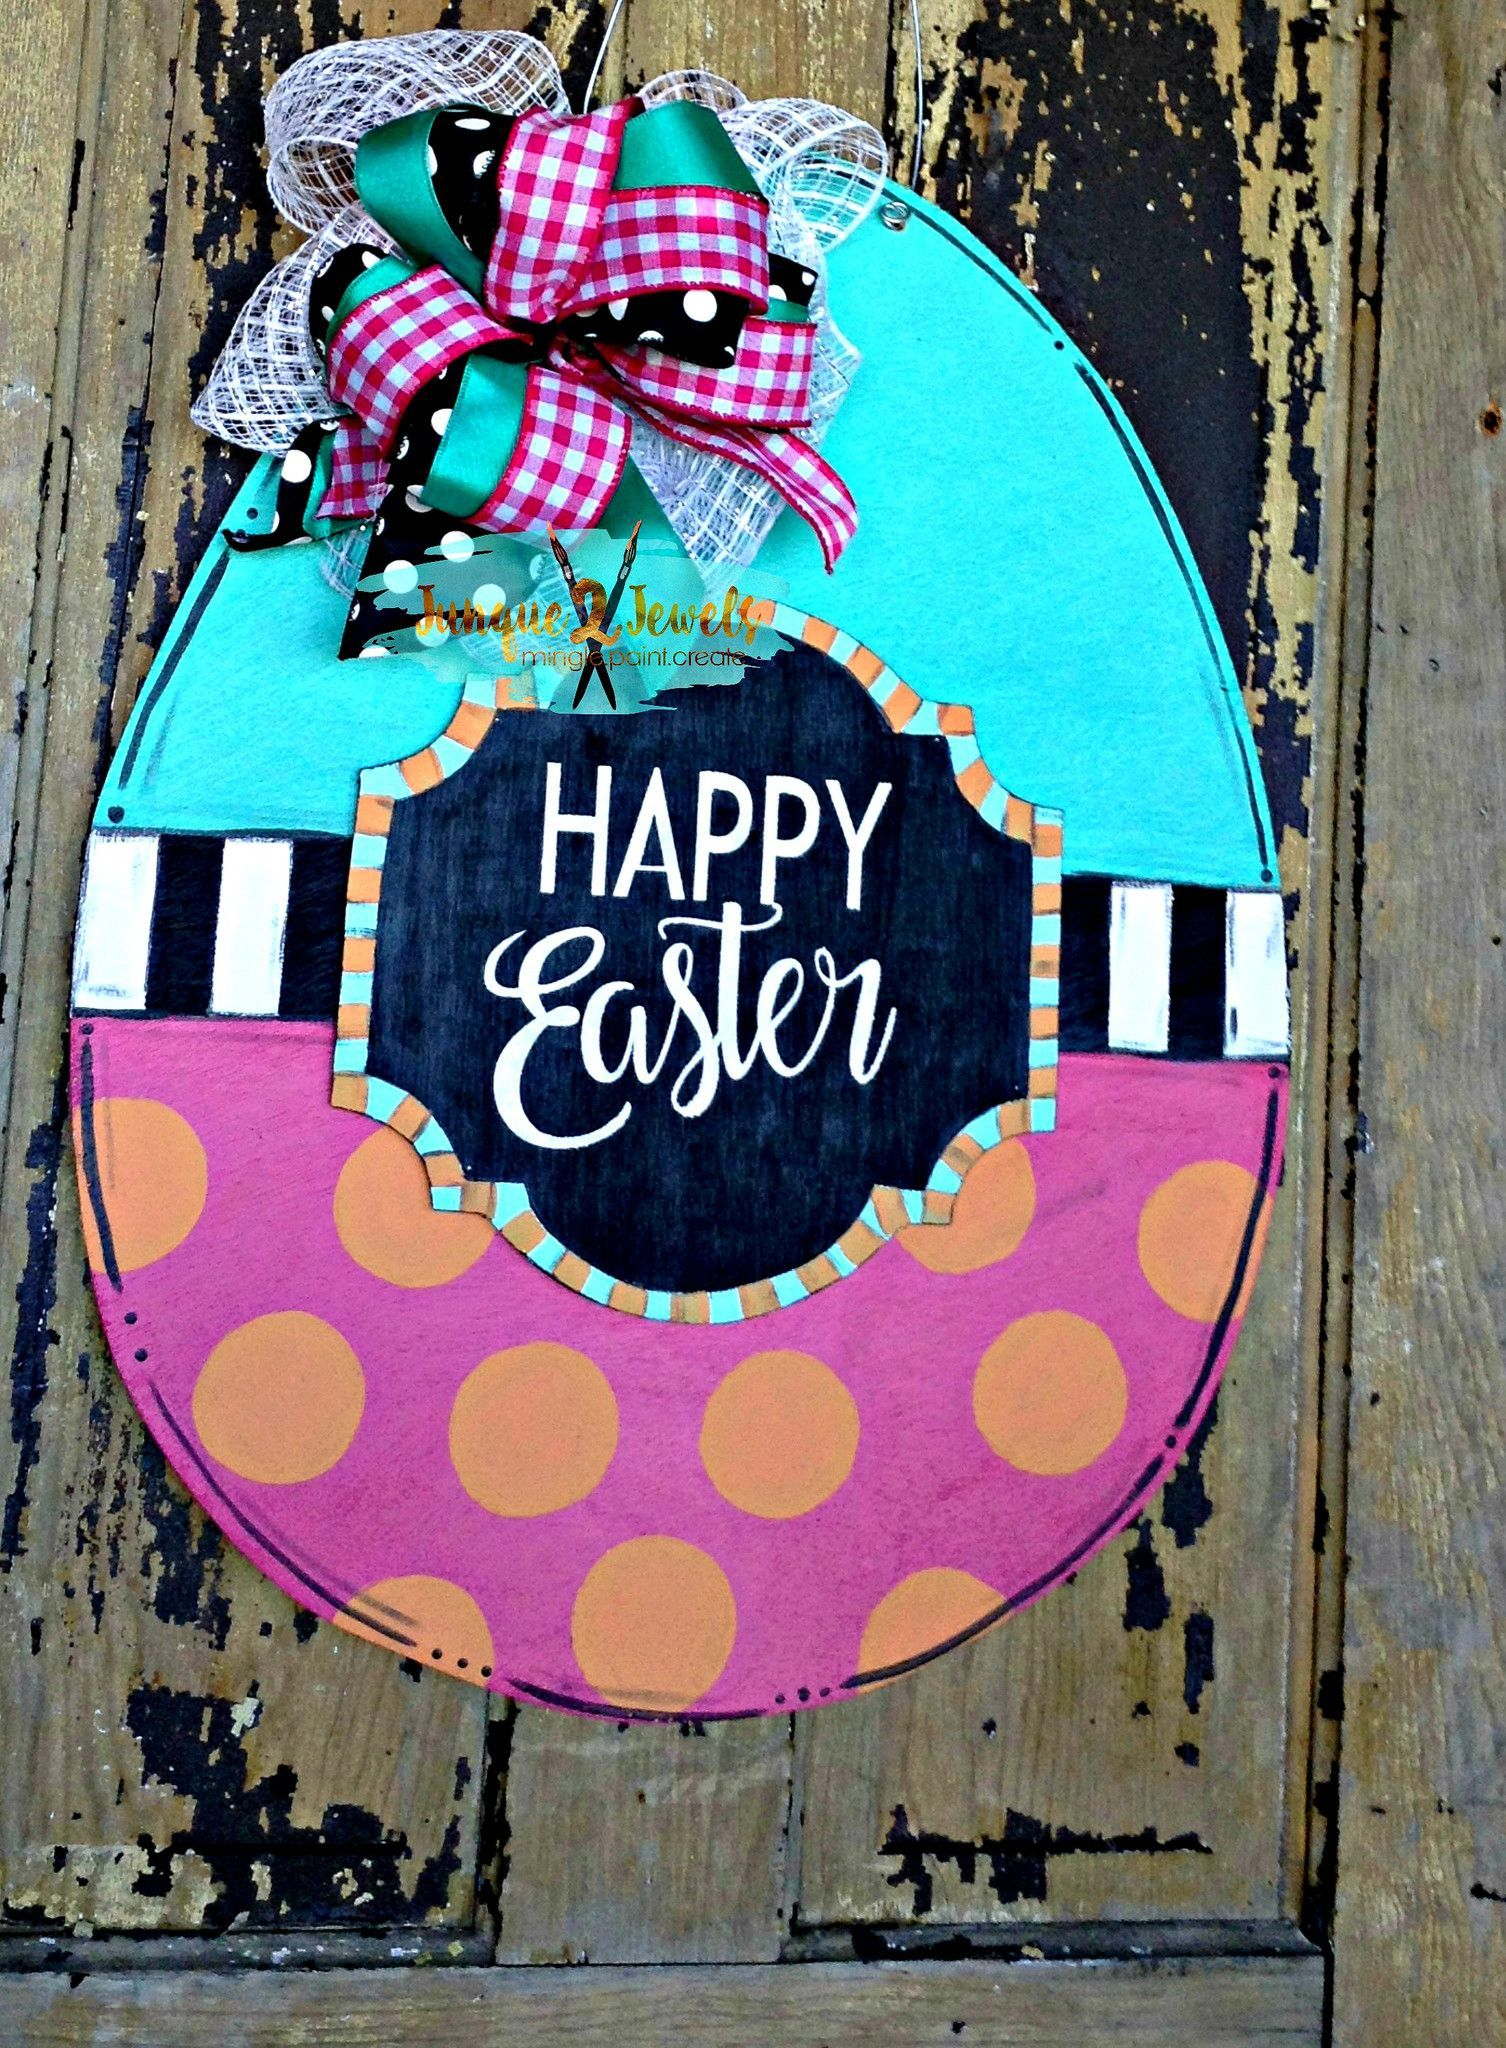 Happy Easter Our Happy Easter Egg door hanger includes a 3 D